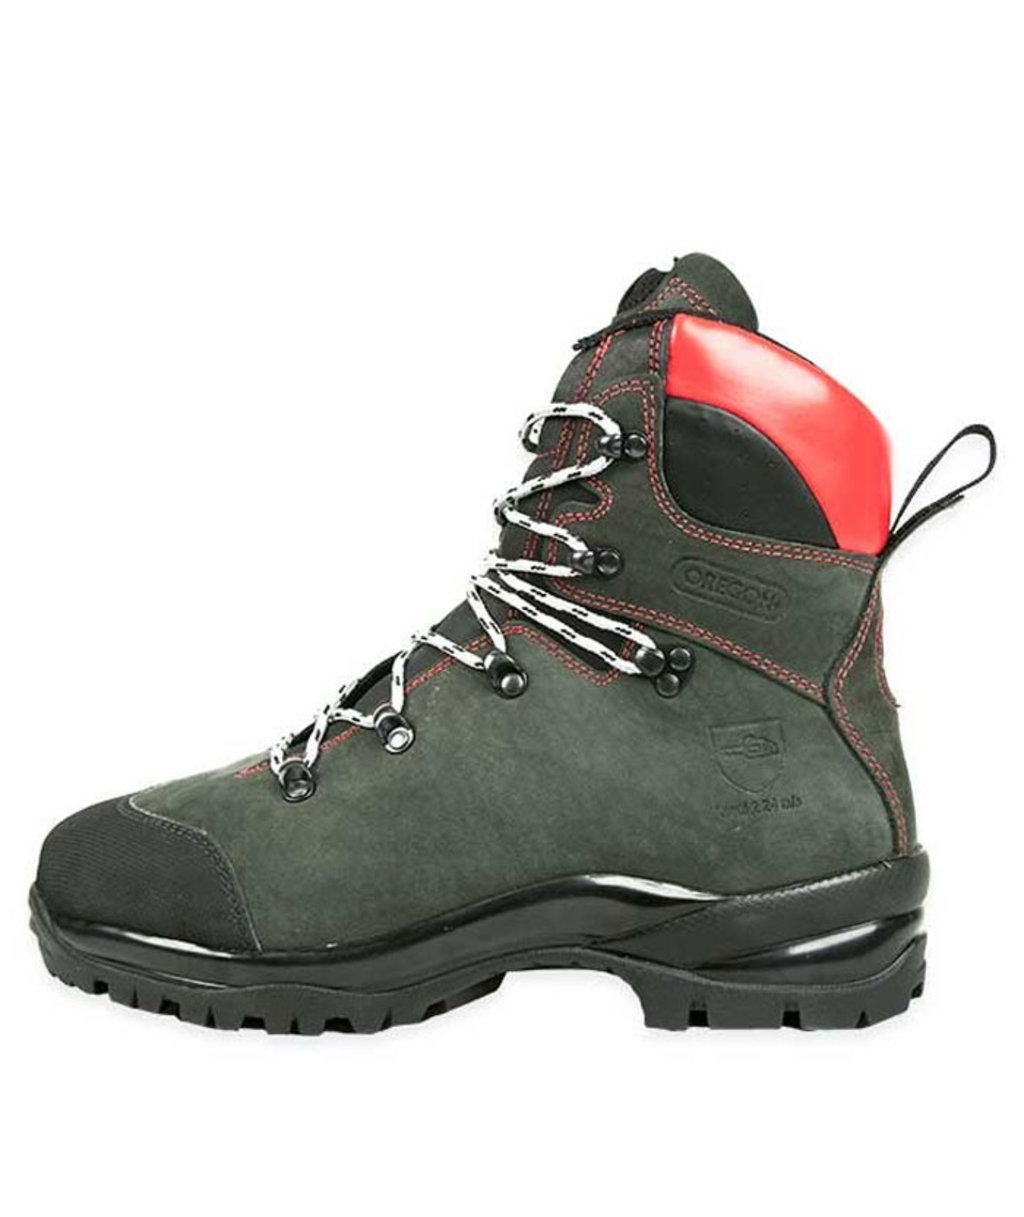 Oregon Fiordland chainsaw boots S3, Green